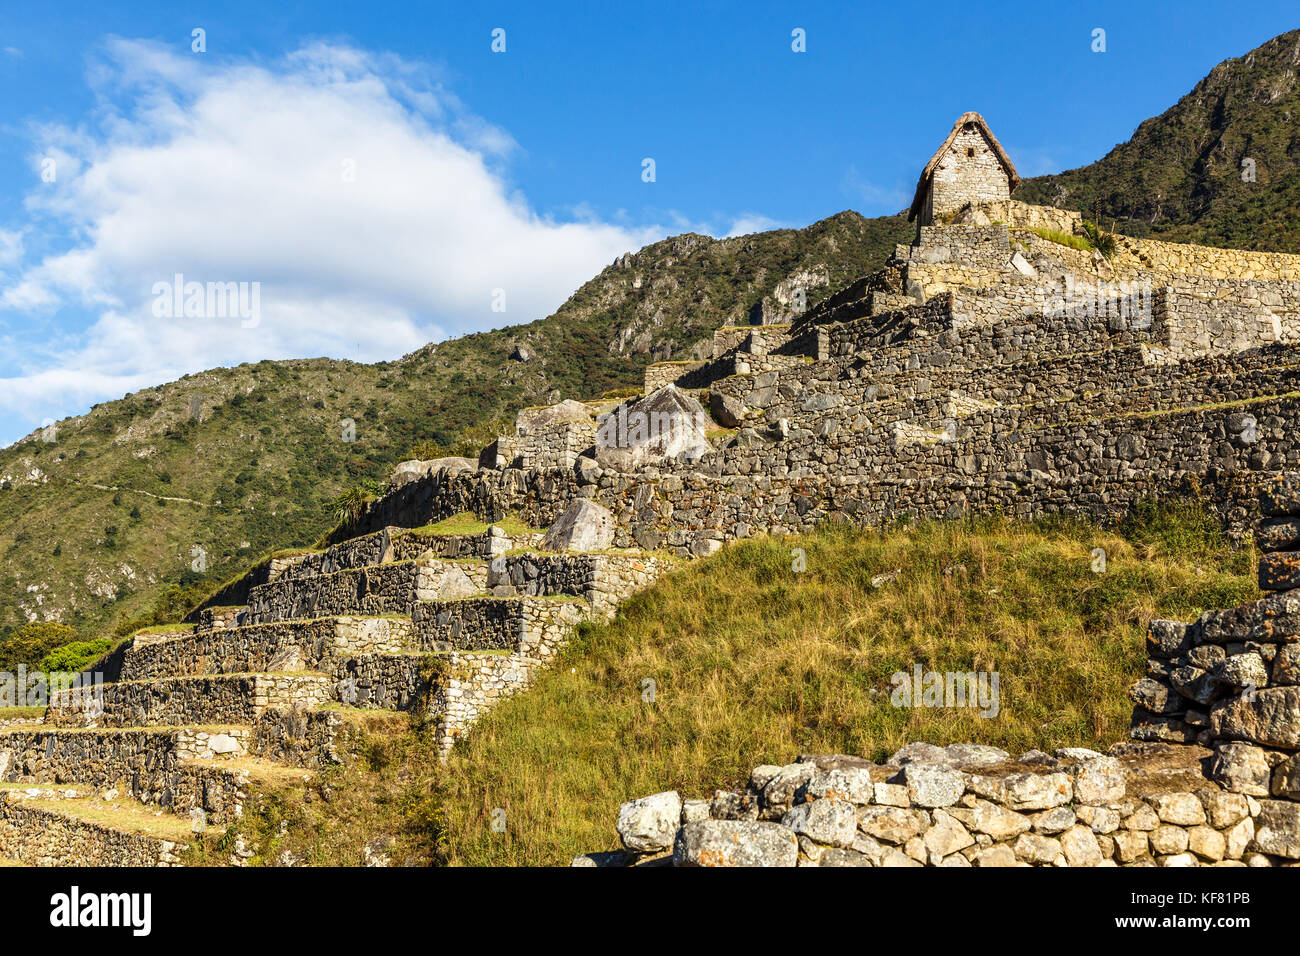 Machu Picchu green terraces and ruins with mountains in the background, Urubamba provnce, Peru - Stock Image